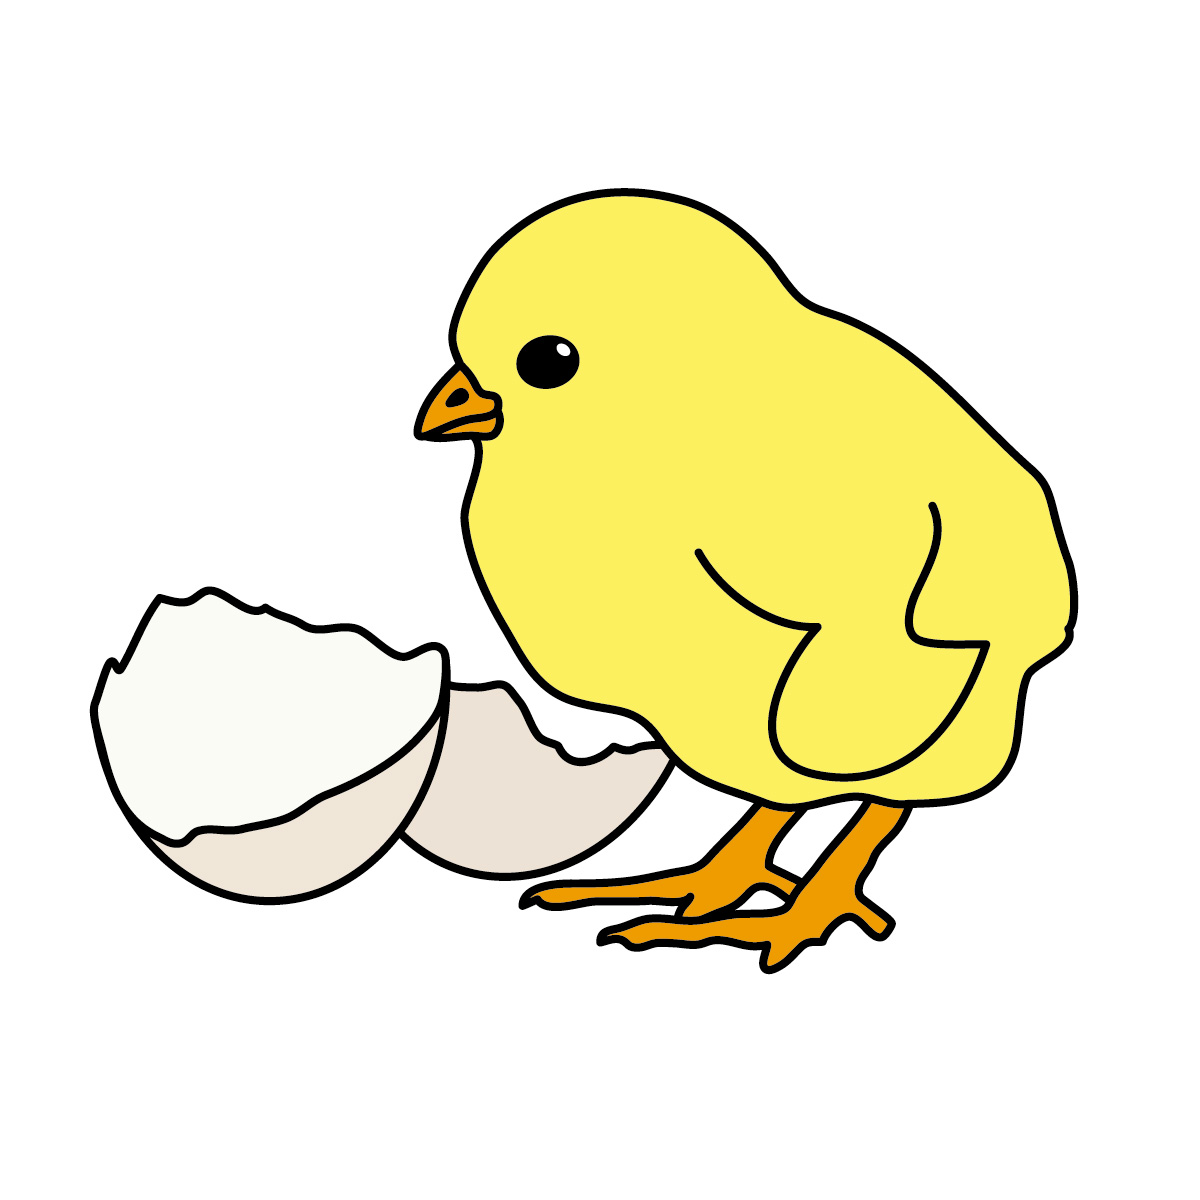 Chicks cartoon clipart image #22314